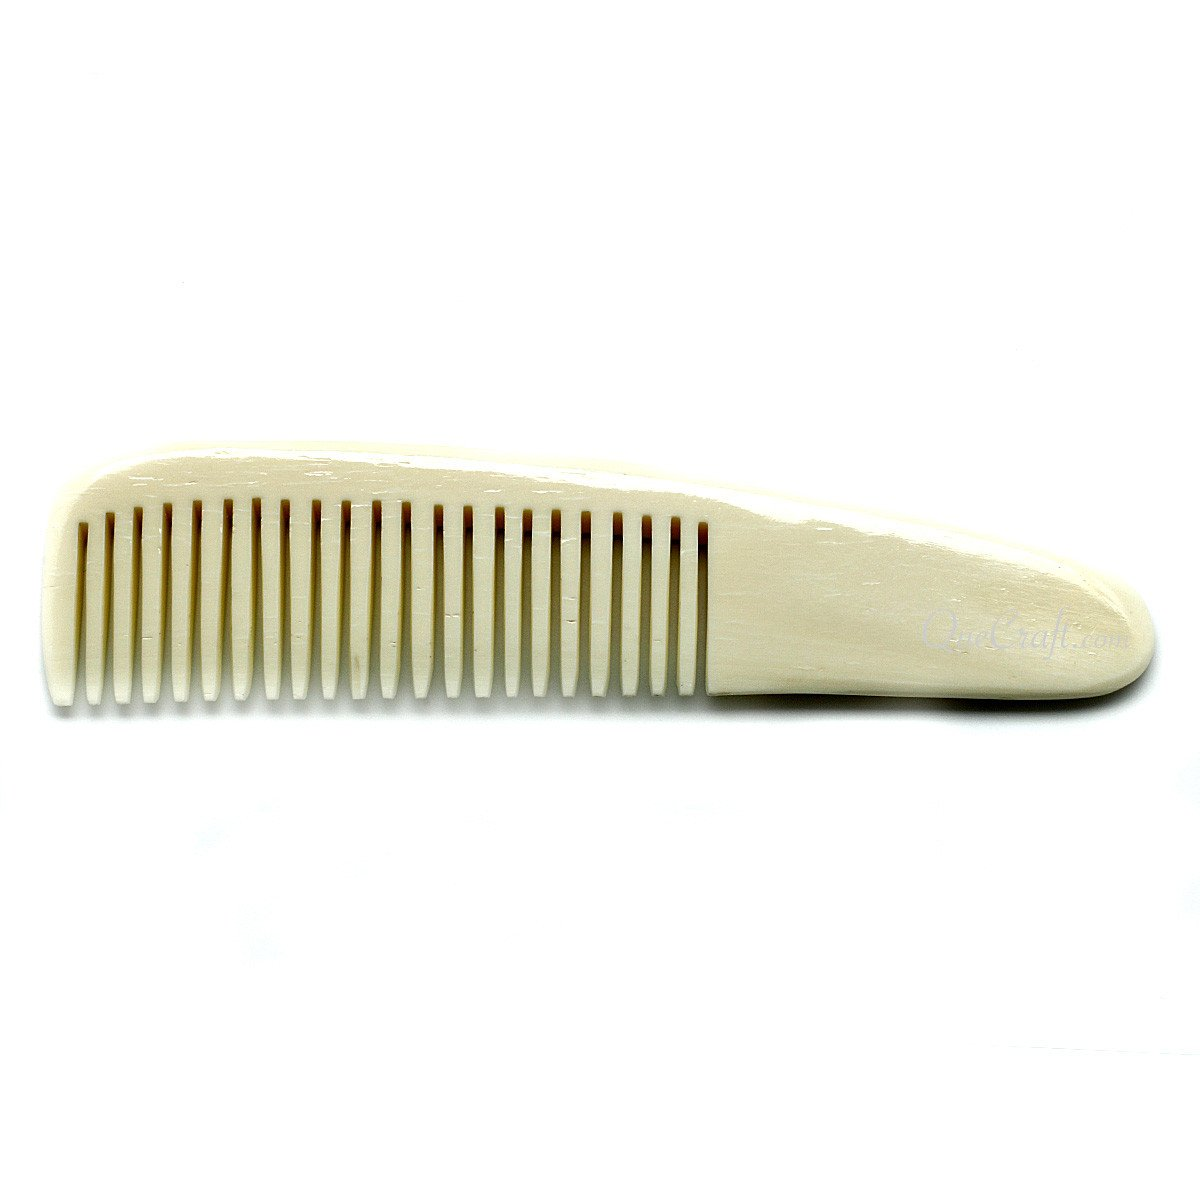 Bone Hair Comb #10668 - HORN.JEWELRY